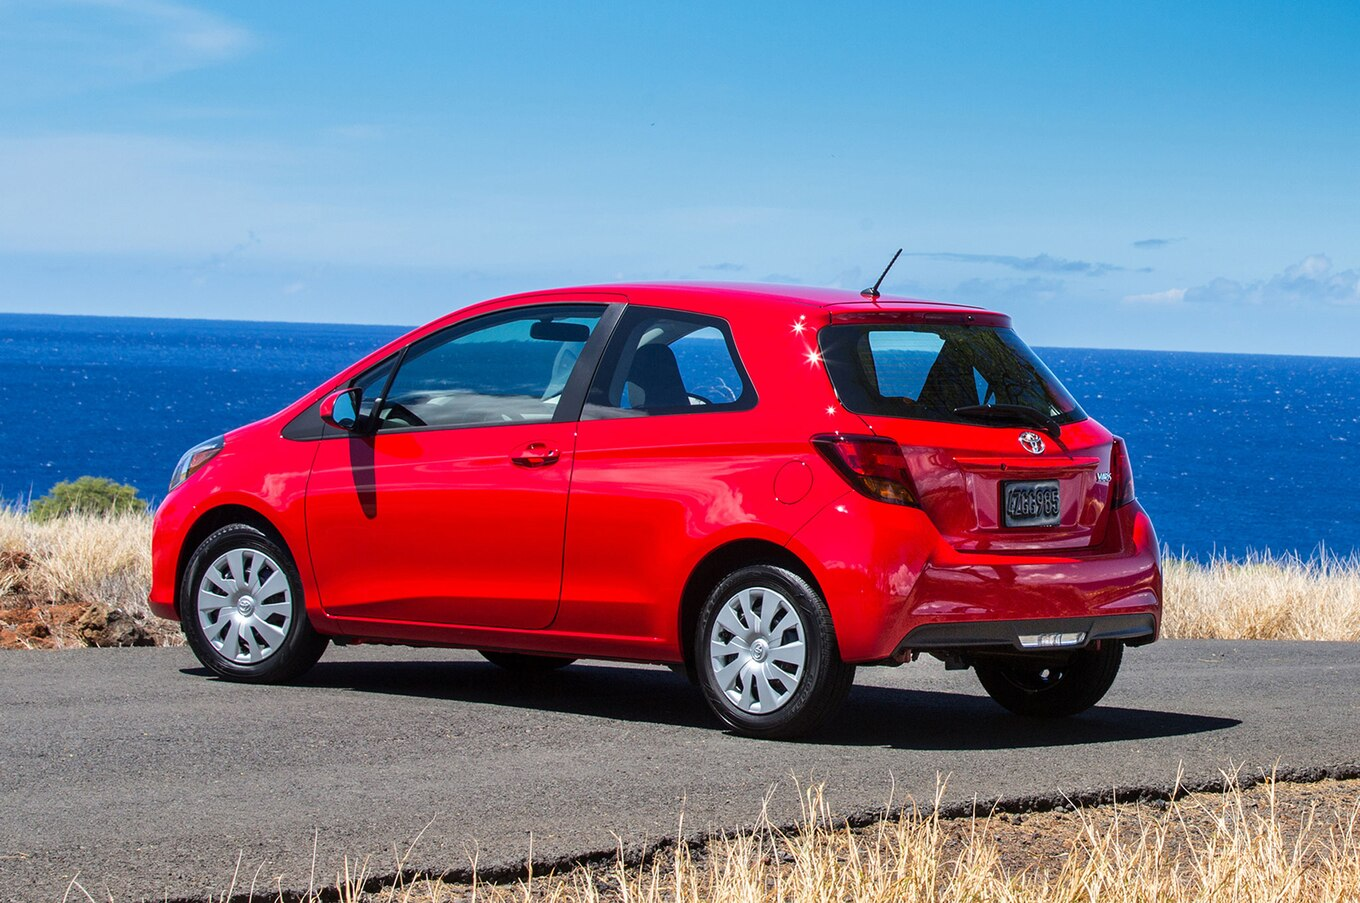 Le Meilleur 2015 Toyota Yaris Review And Rating Motor Trend Ce Mois Ci